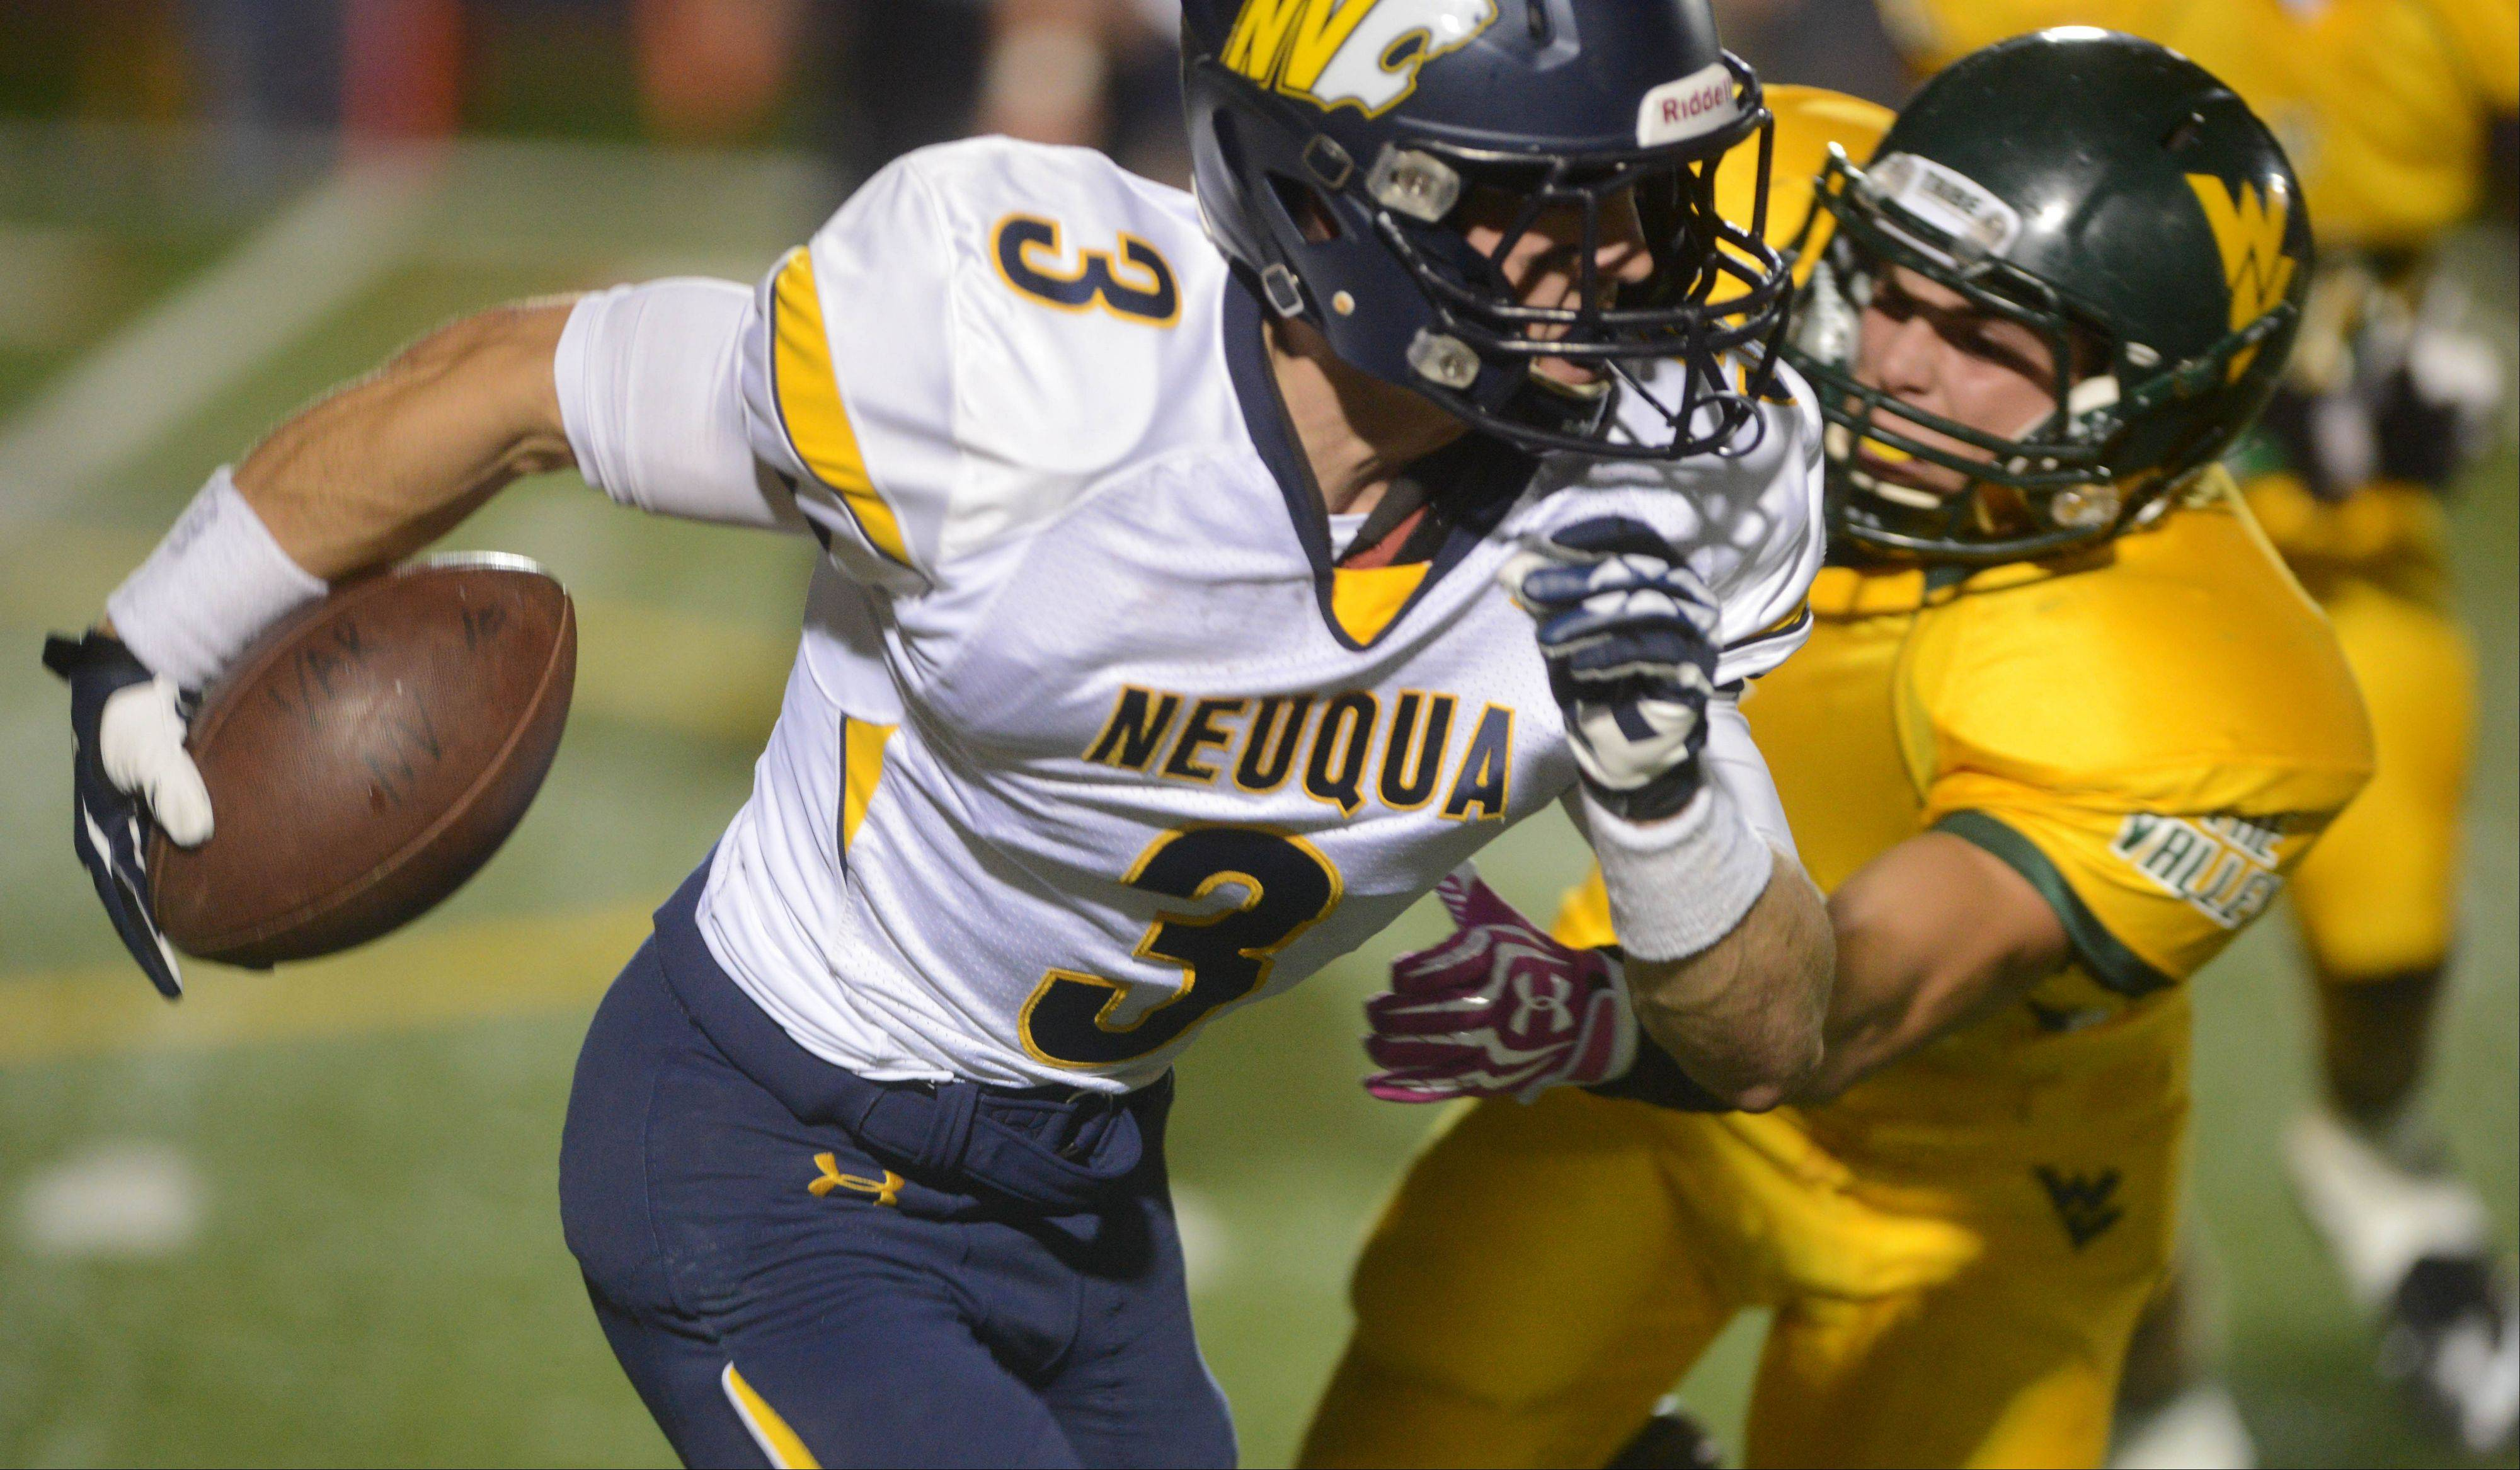 Mikey Dudek of Neuqua Valley runs the ball.